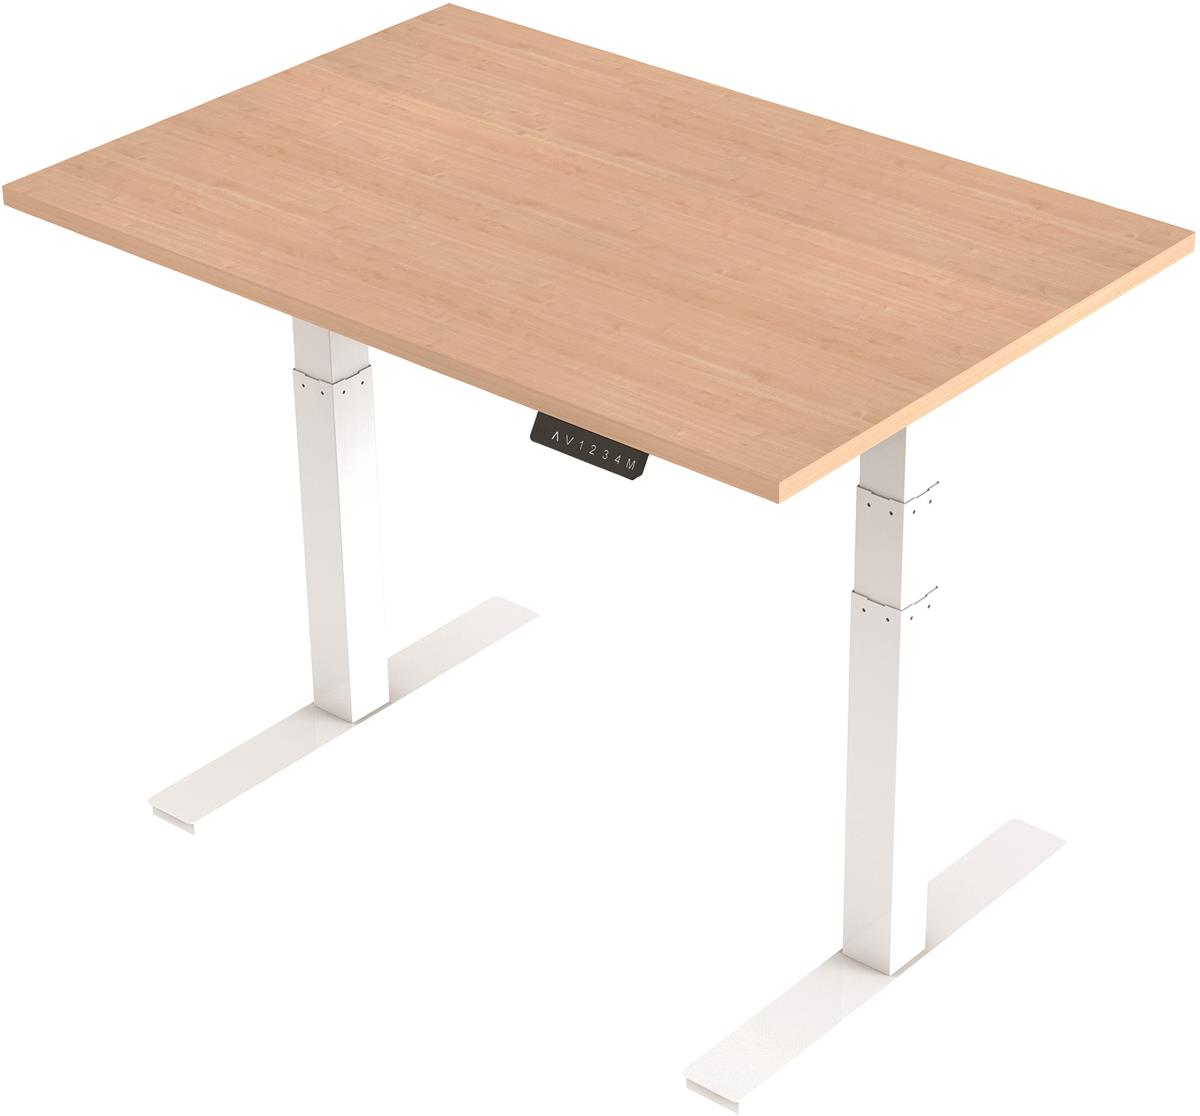 Image for Trexus Sit Stand Desk Height-adjustable White Leg Frame 1200mm Maple